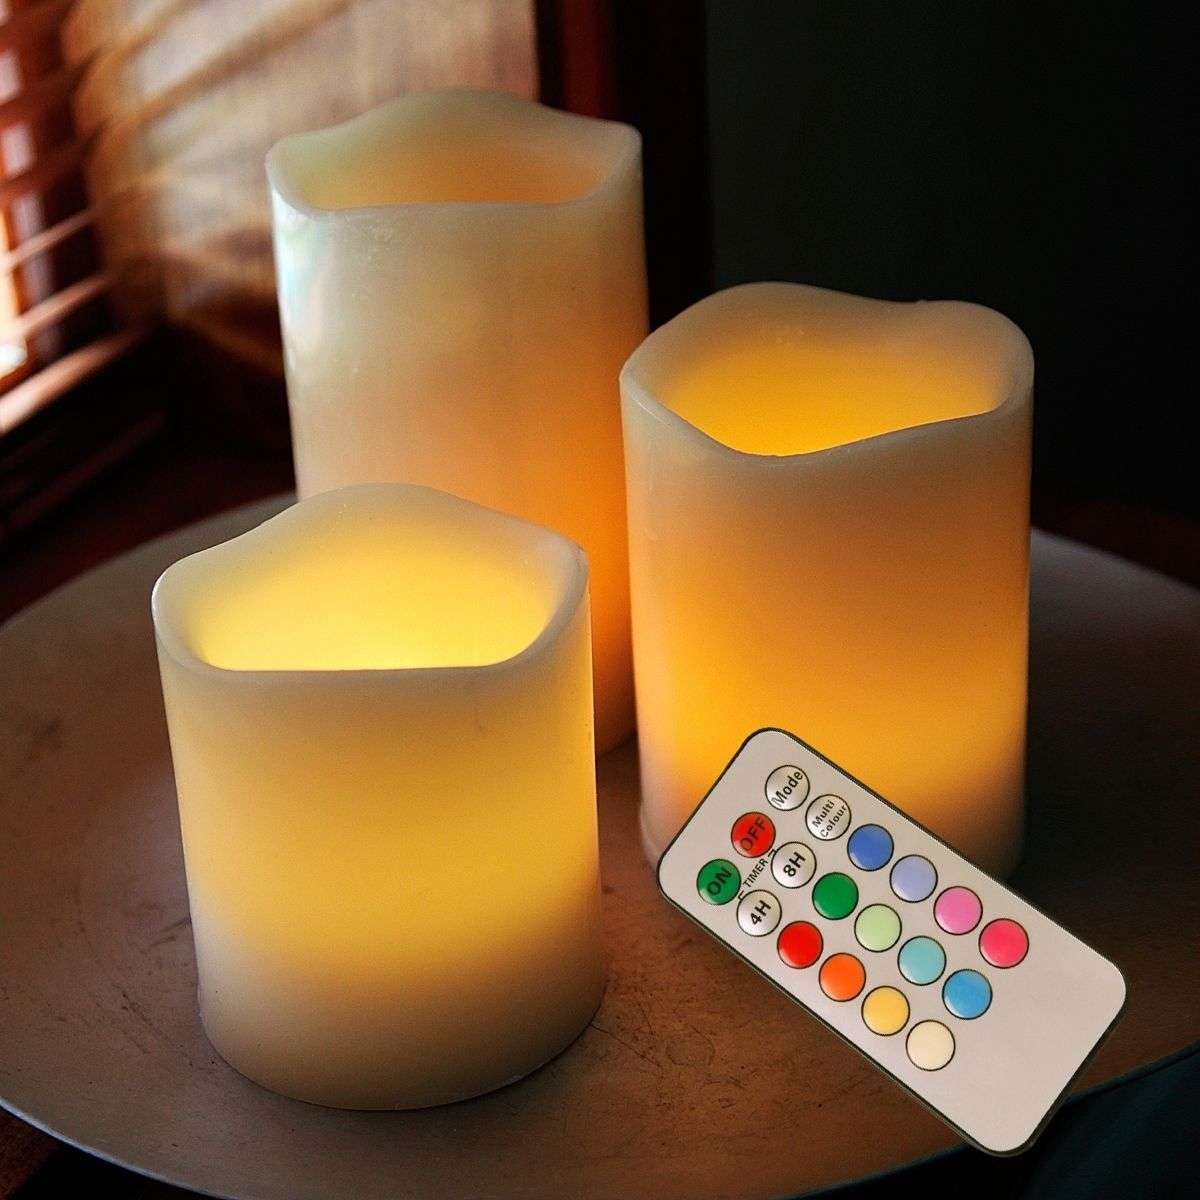 LED Candle Wax RGB kleurverandering and afstandsbed.-1522390-31